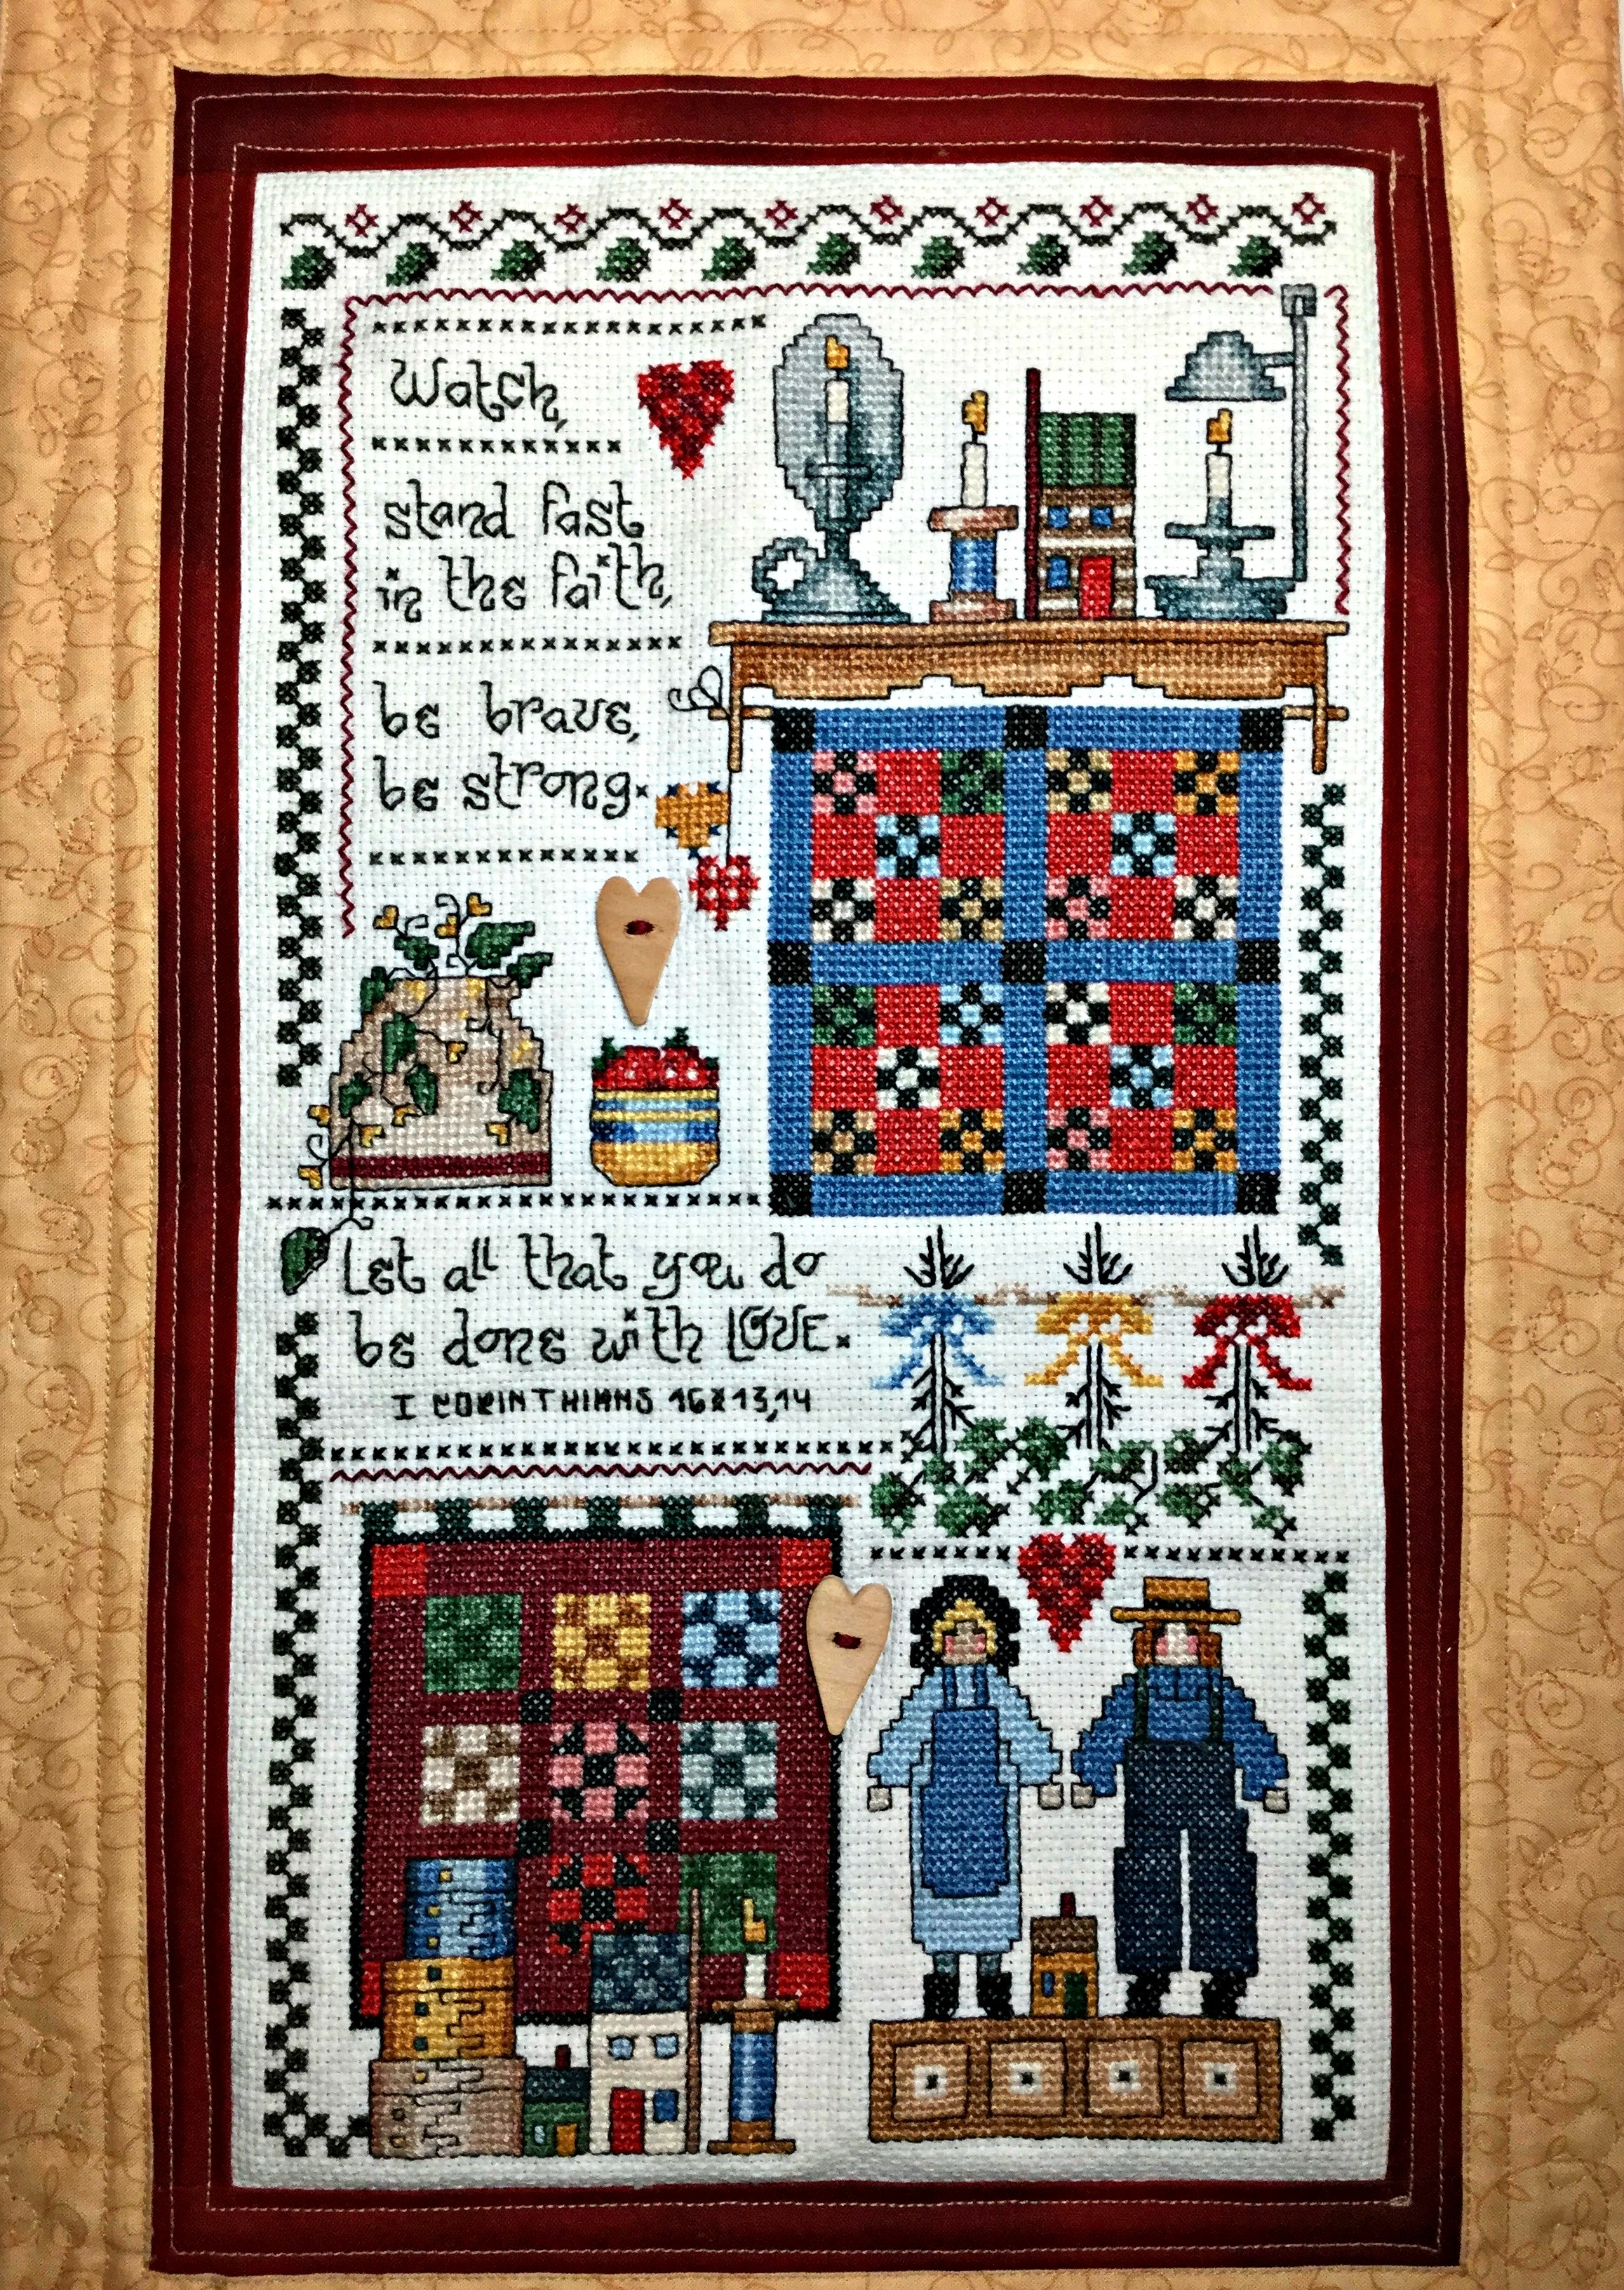 Embellish Using Sewing Buttons. Ideas using buttons to finish your cross stitch projects.